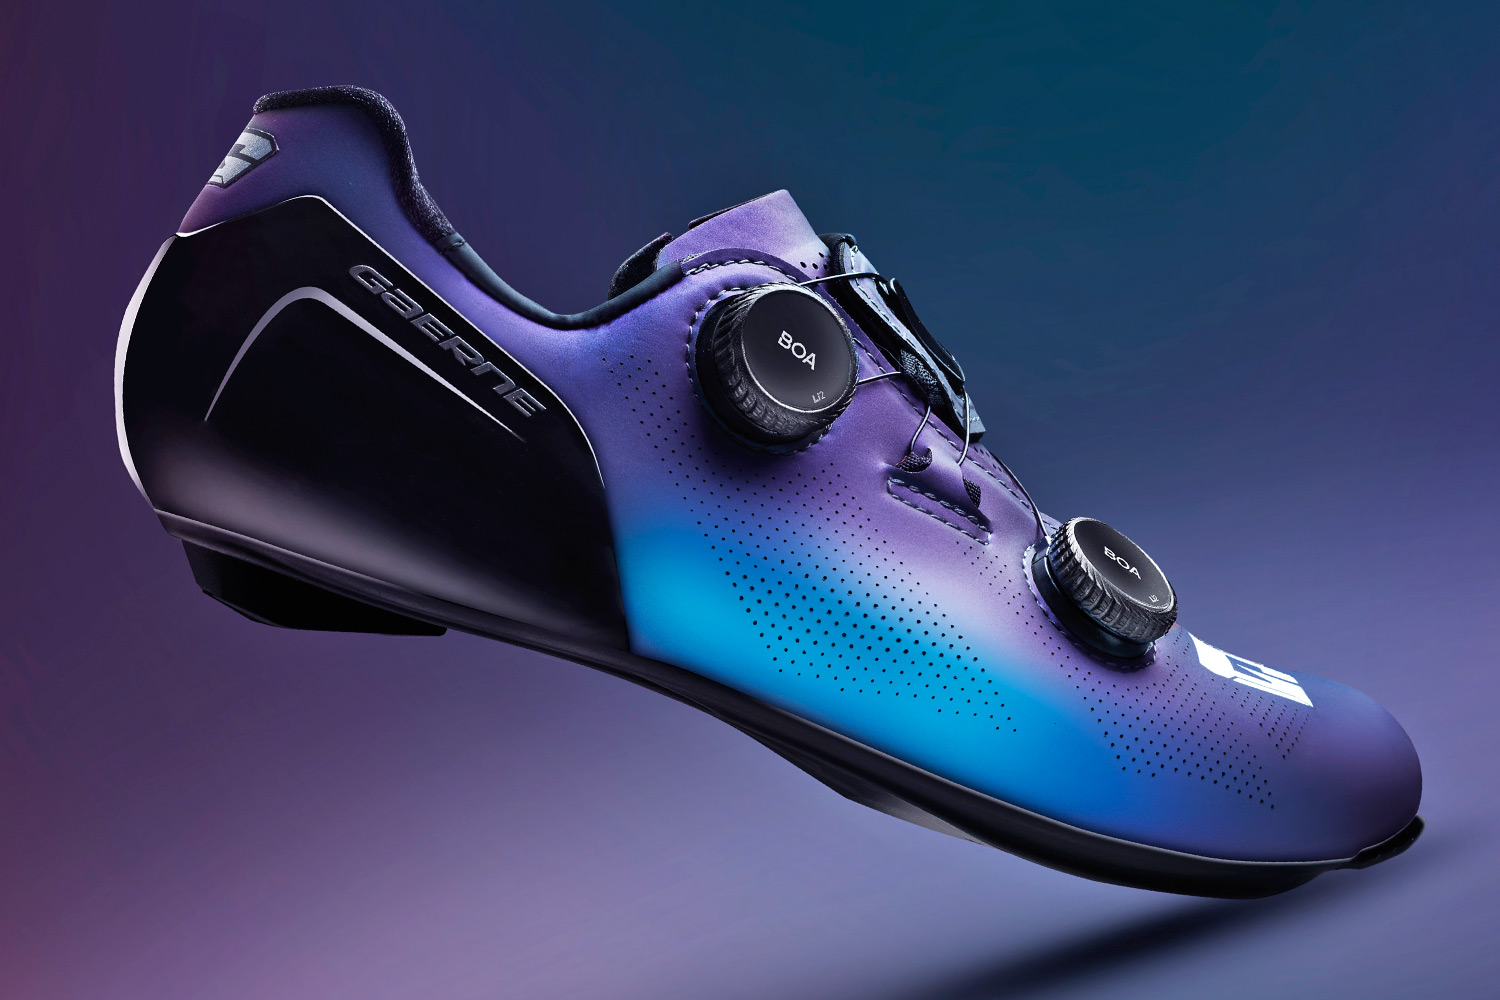 Gaerne G.STL road shoes, top-tier made-in-Italy performance carbon road race bike shoe,Iridium iridescent purple